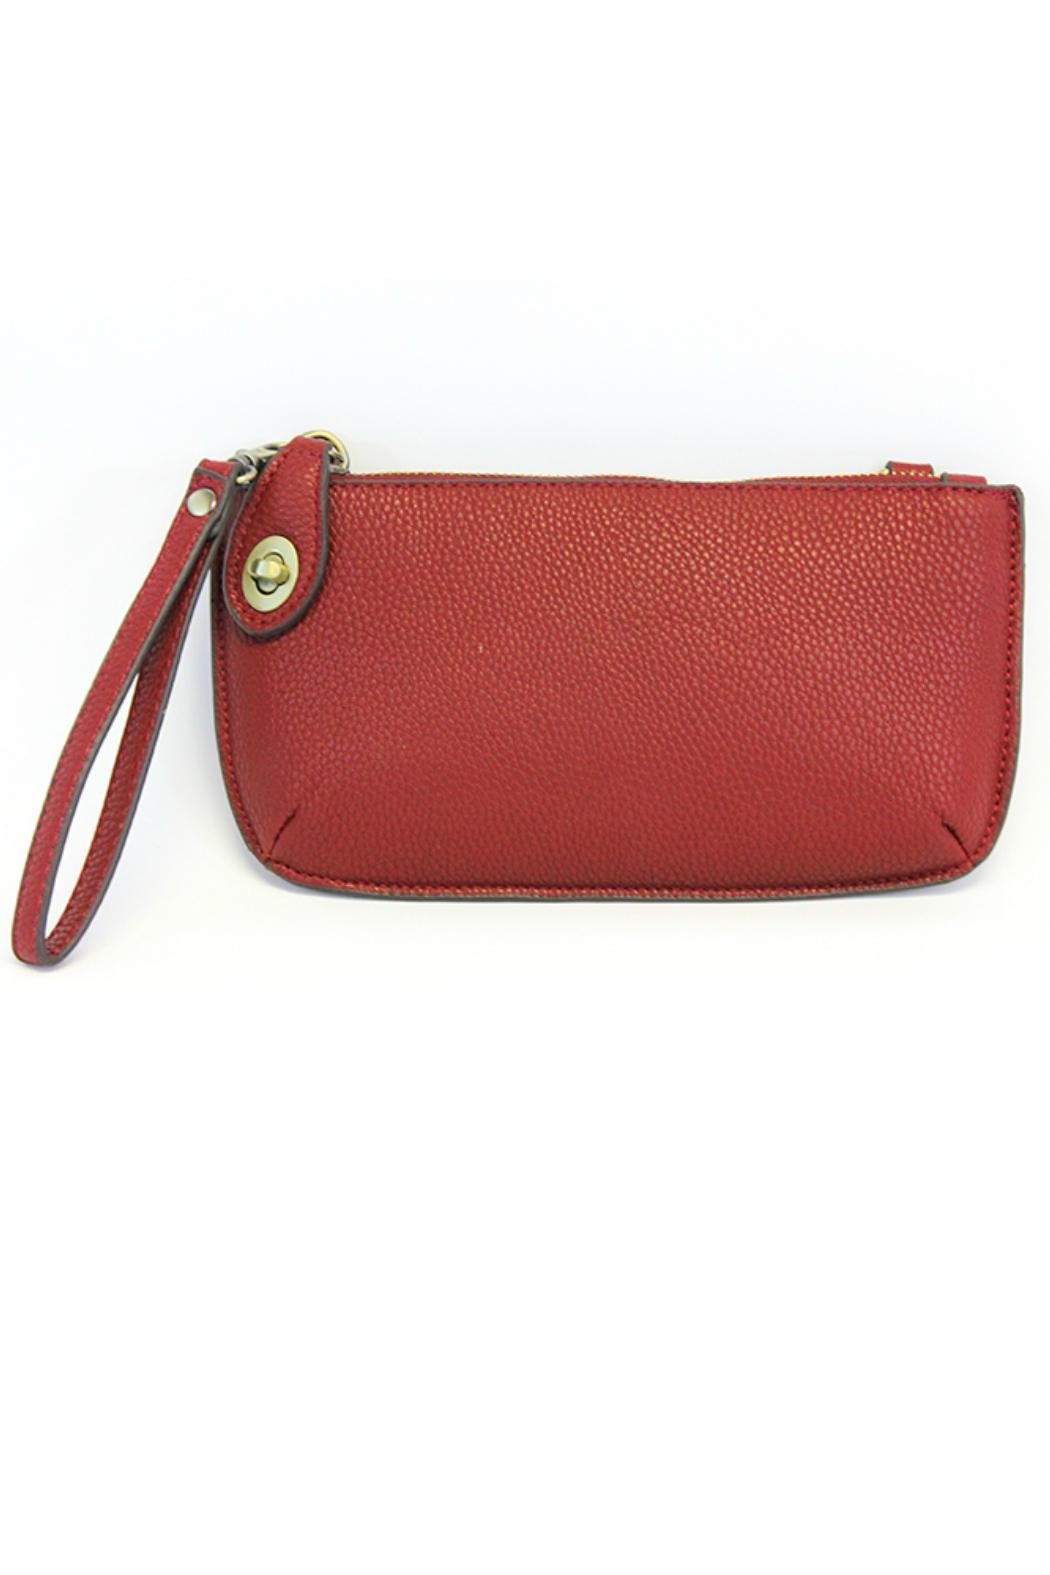 Joy Susan Crossbody Wristlet Clutch - Front Cropped Image